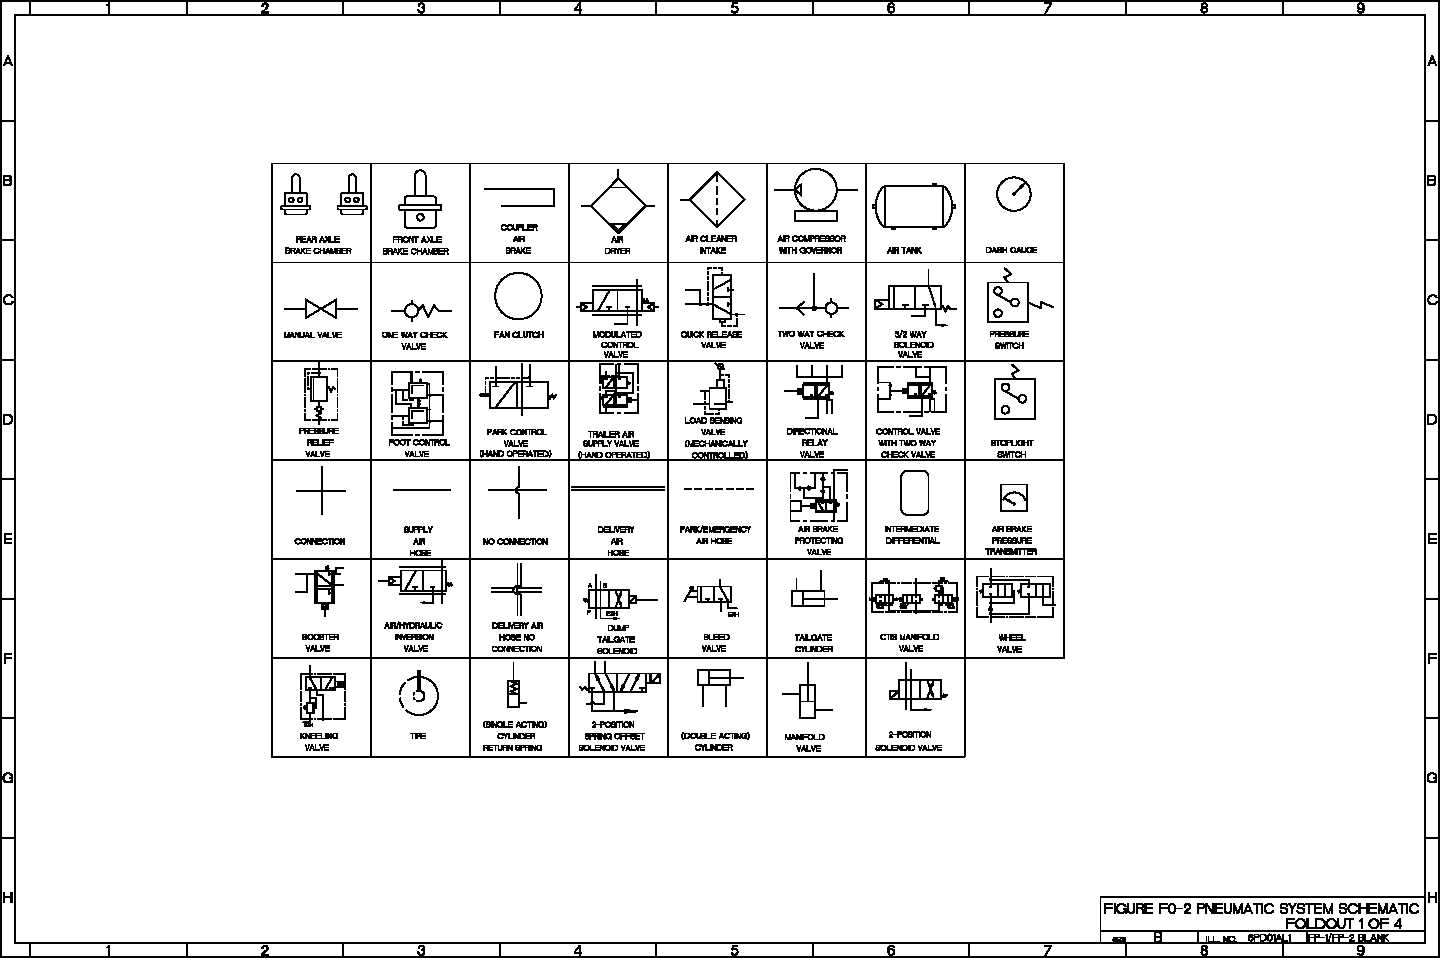 Figure Fo 2 Pneumatic System Schematic Foldout 1 Of 4